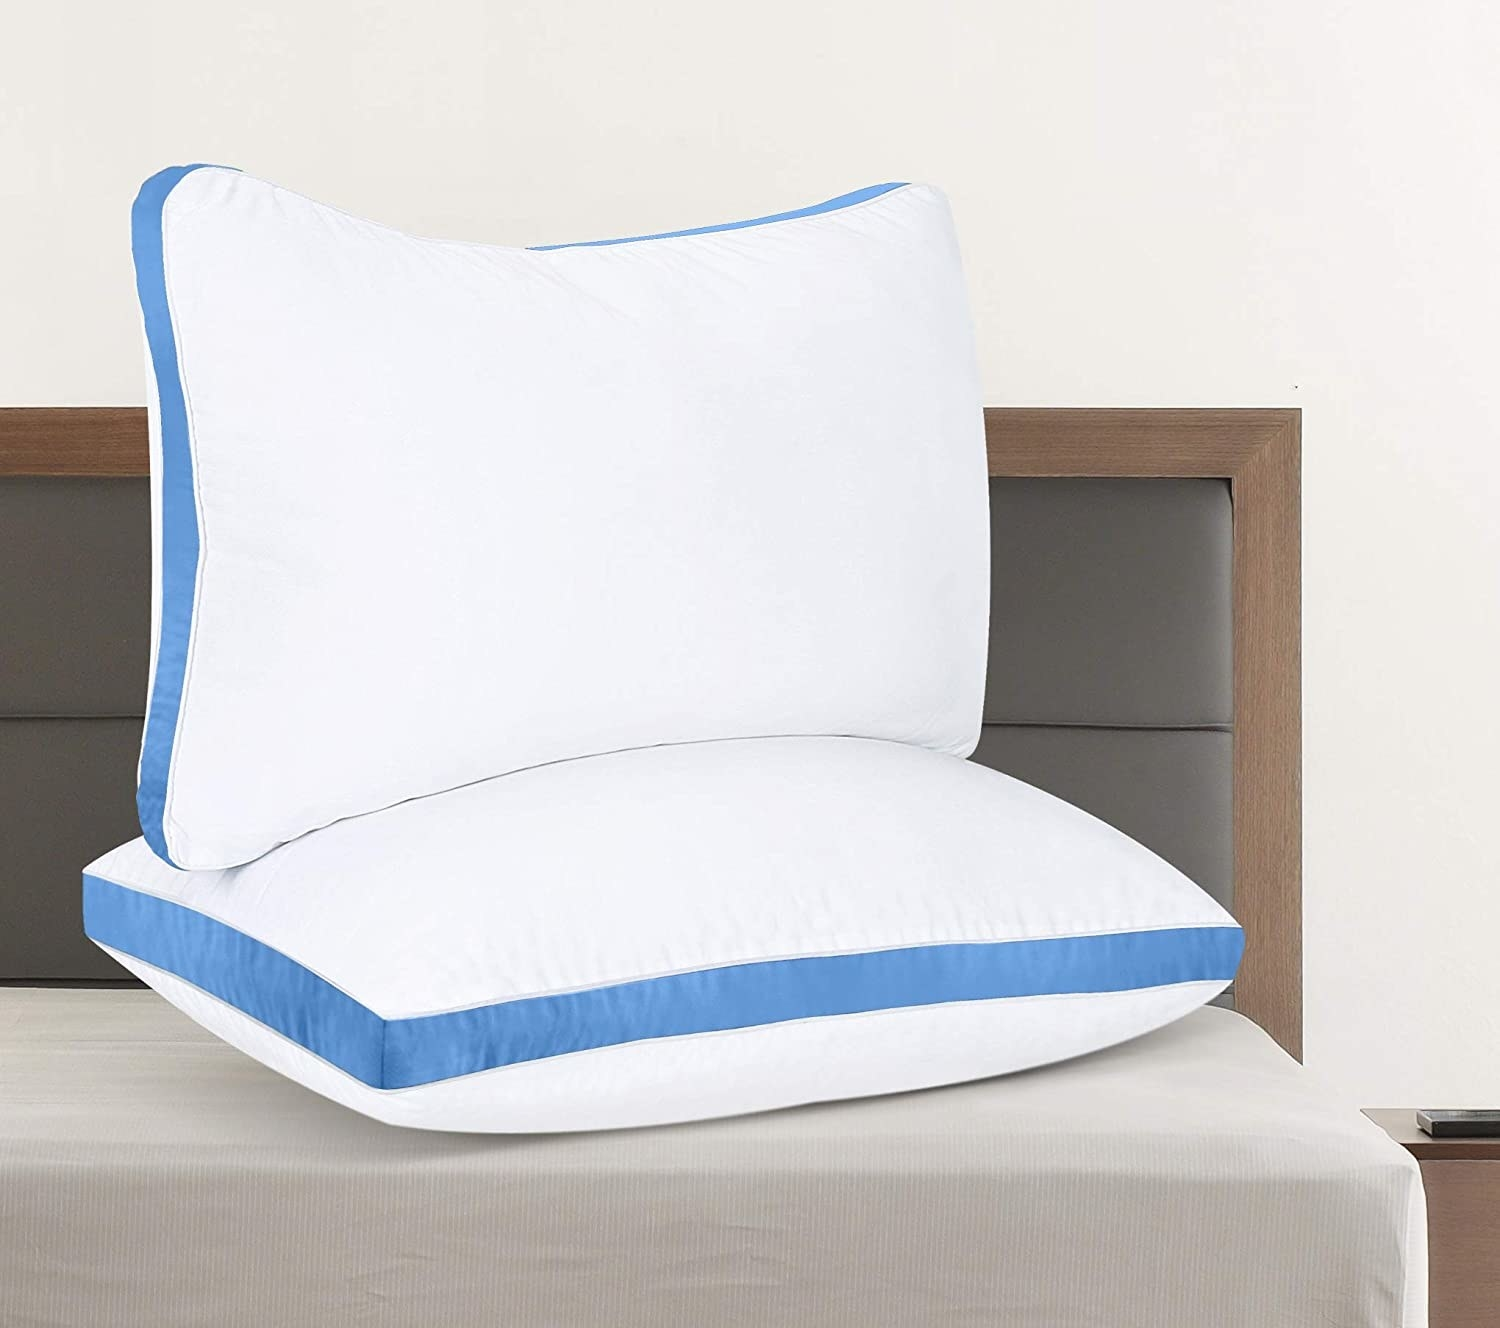 Two quilted pillows stack on top of each other on a bed